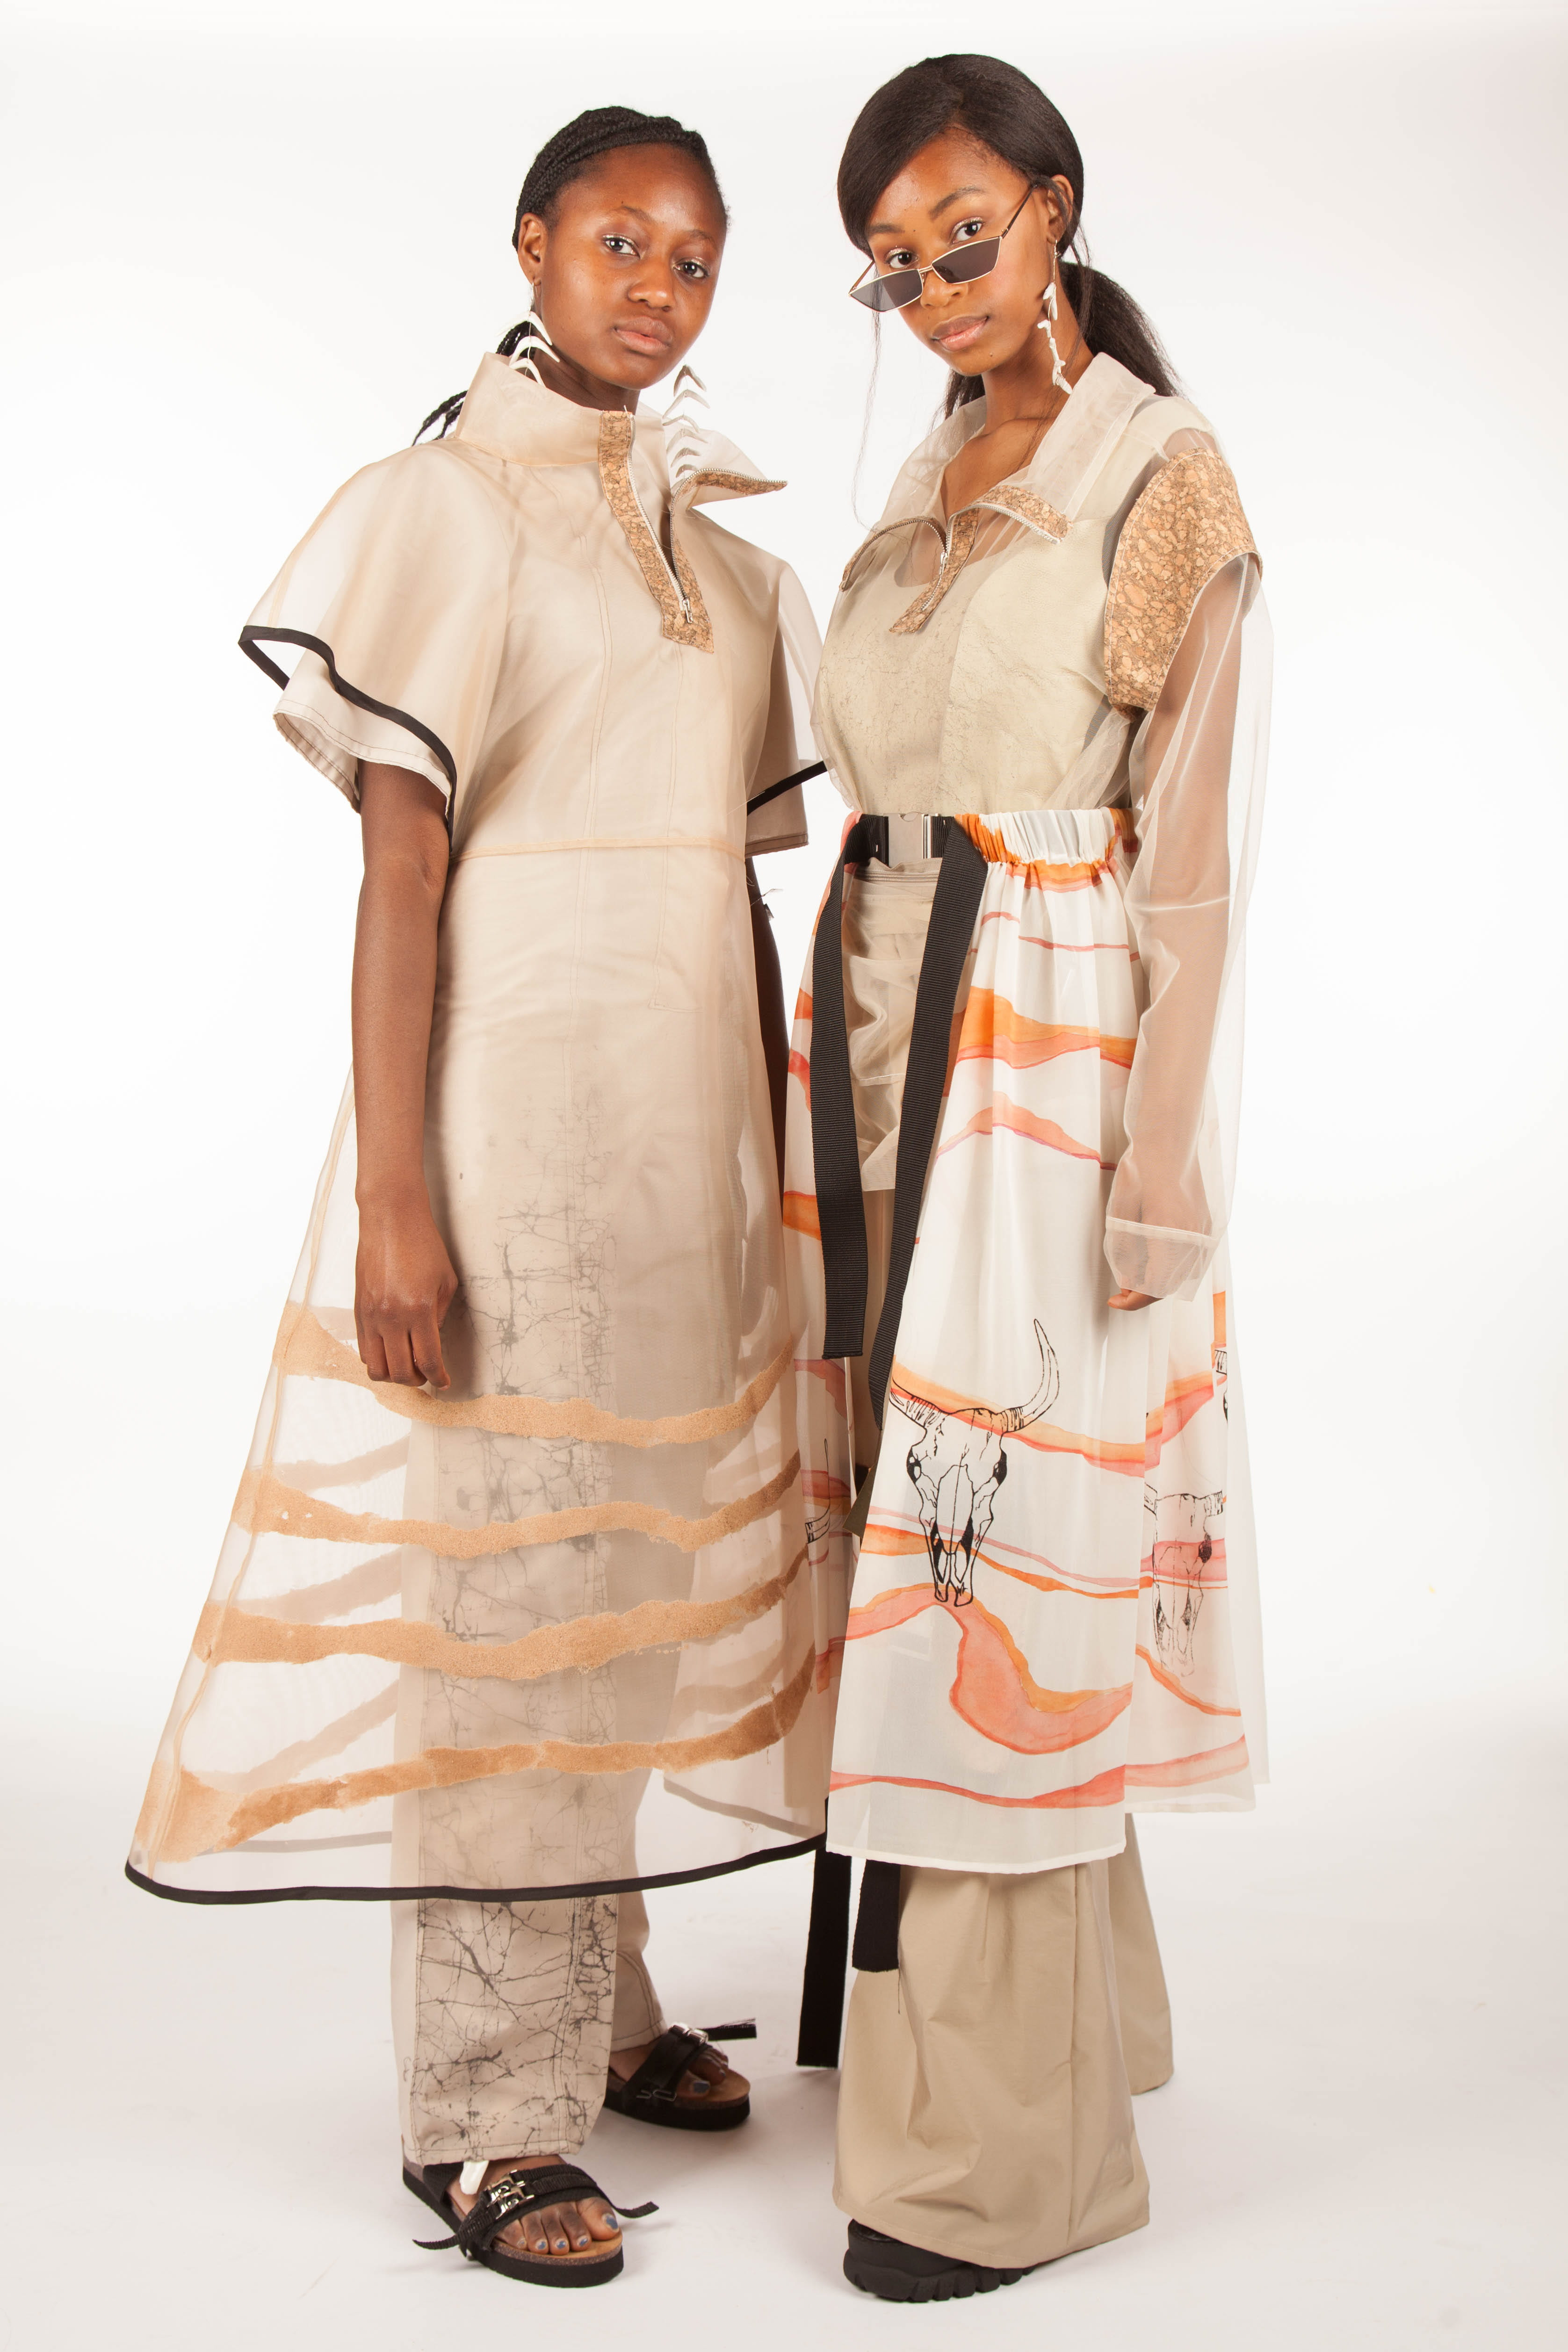 Two female models in cream and salmon dresses, each made with recycled materials.